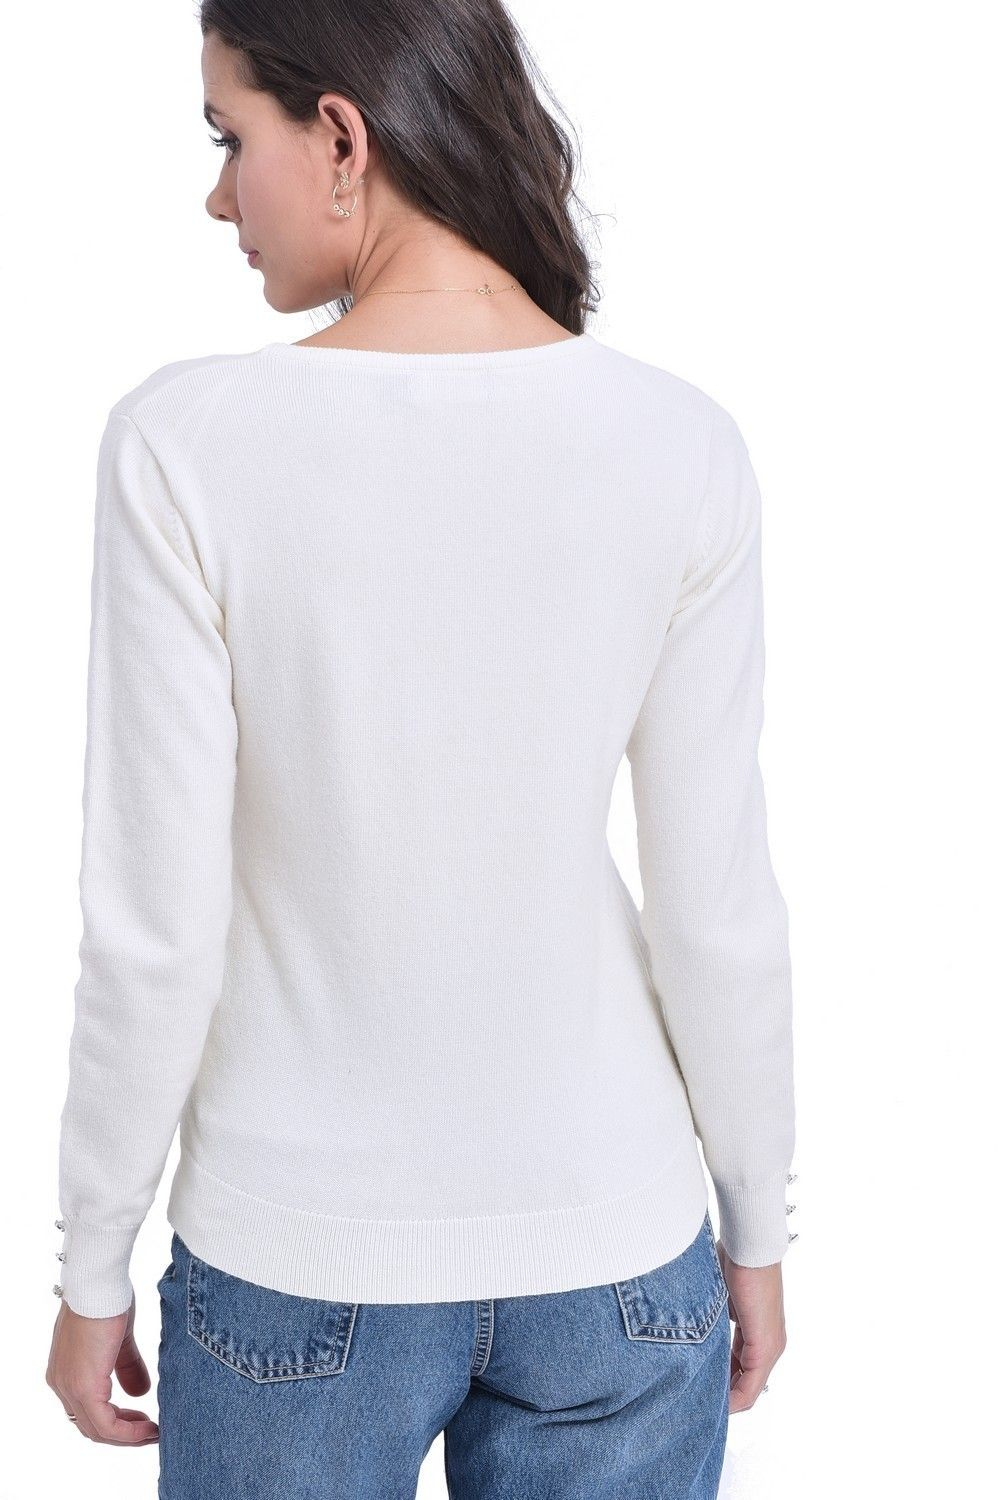 C&JO Round Neck Sweater with Buttoned Sleeves in Natural